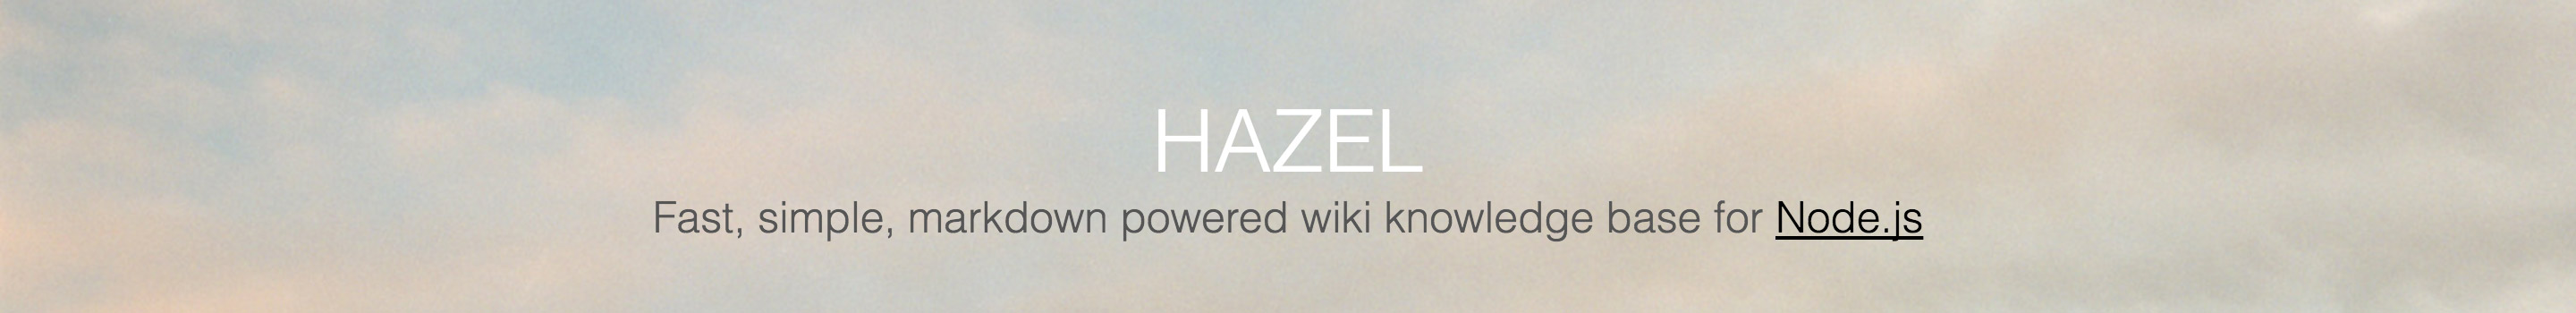 Hazel: Fast, simple, markdown powered wiki knowledge base for NodeJs